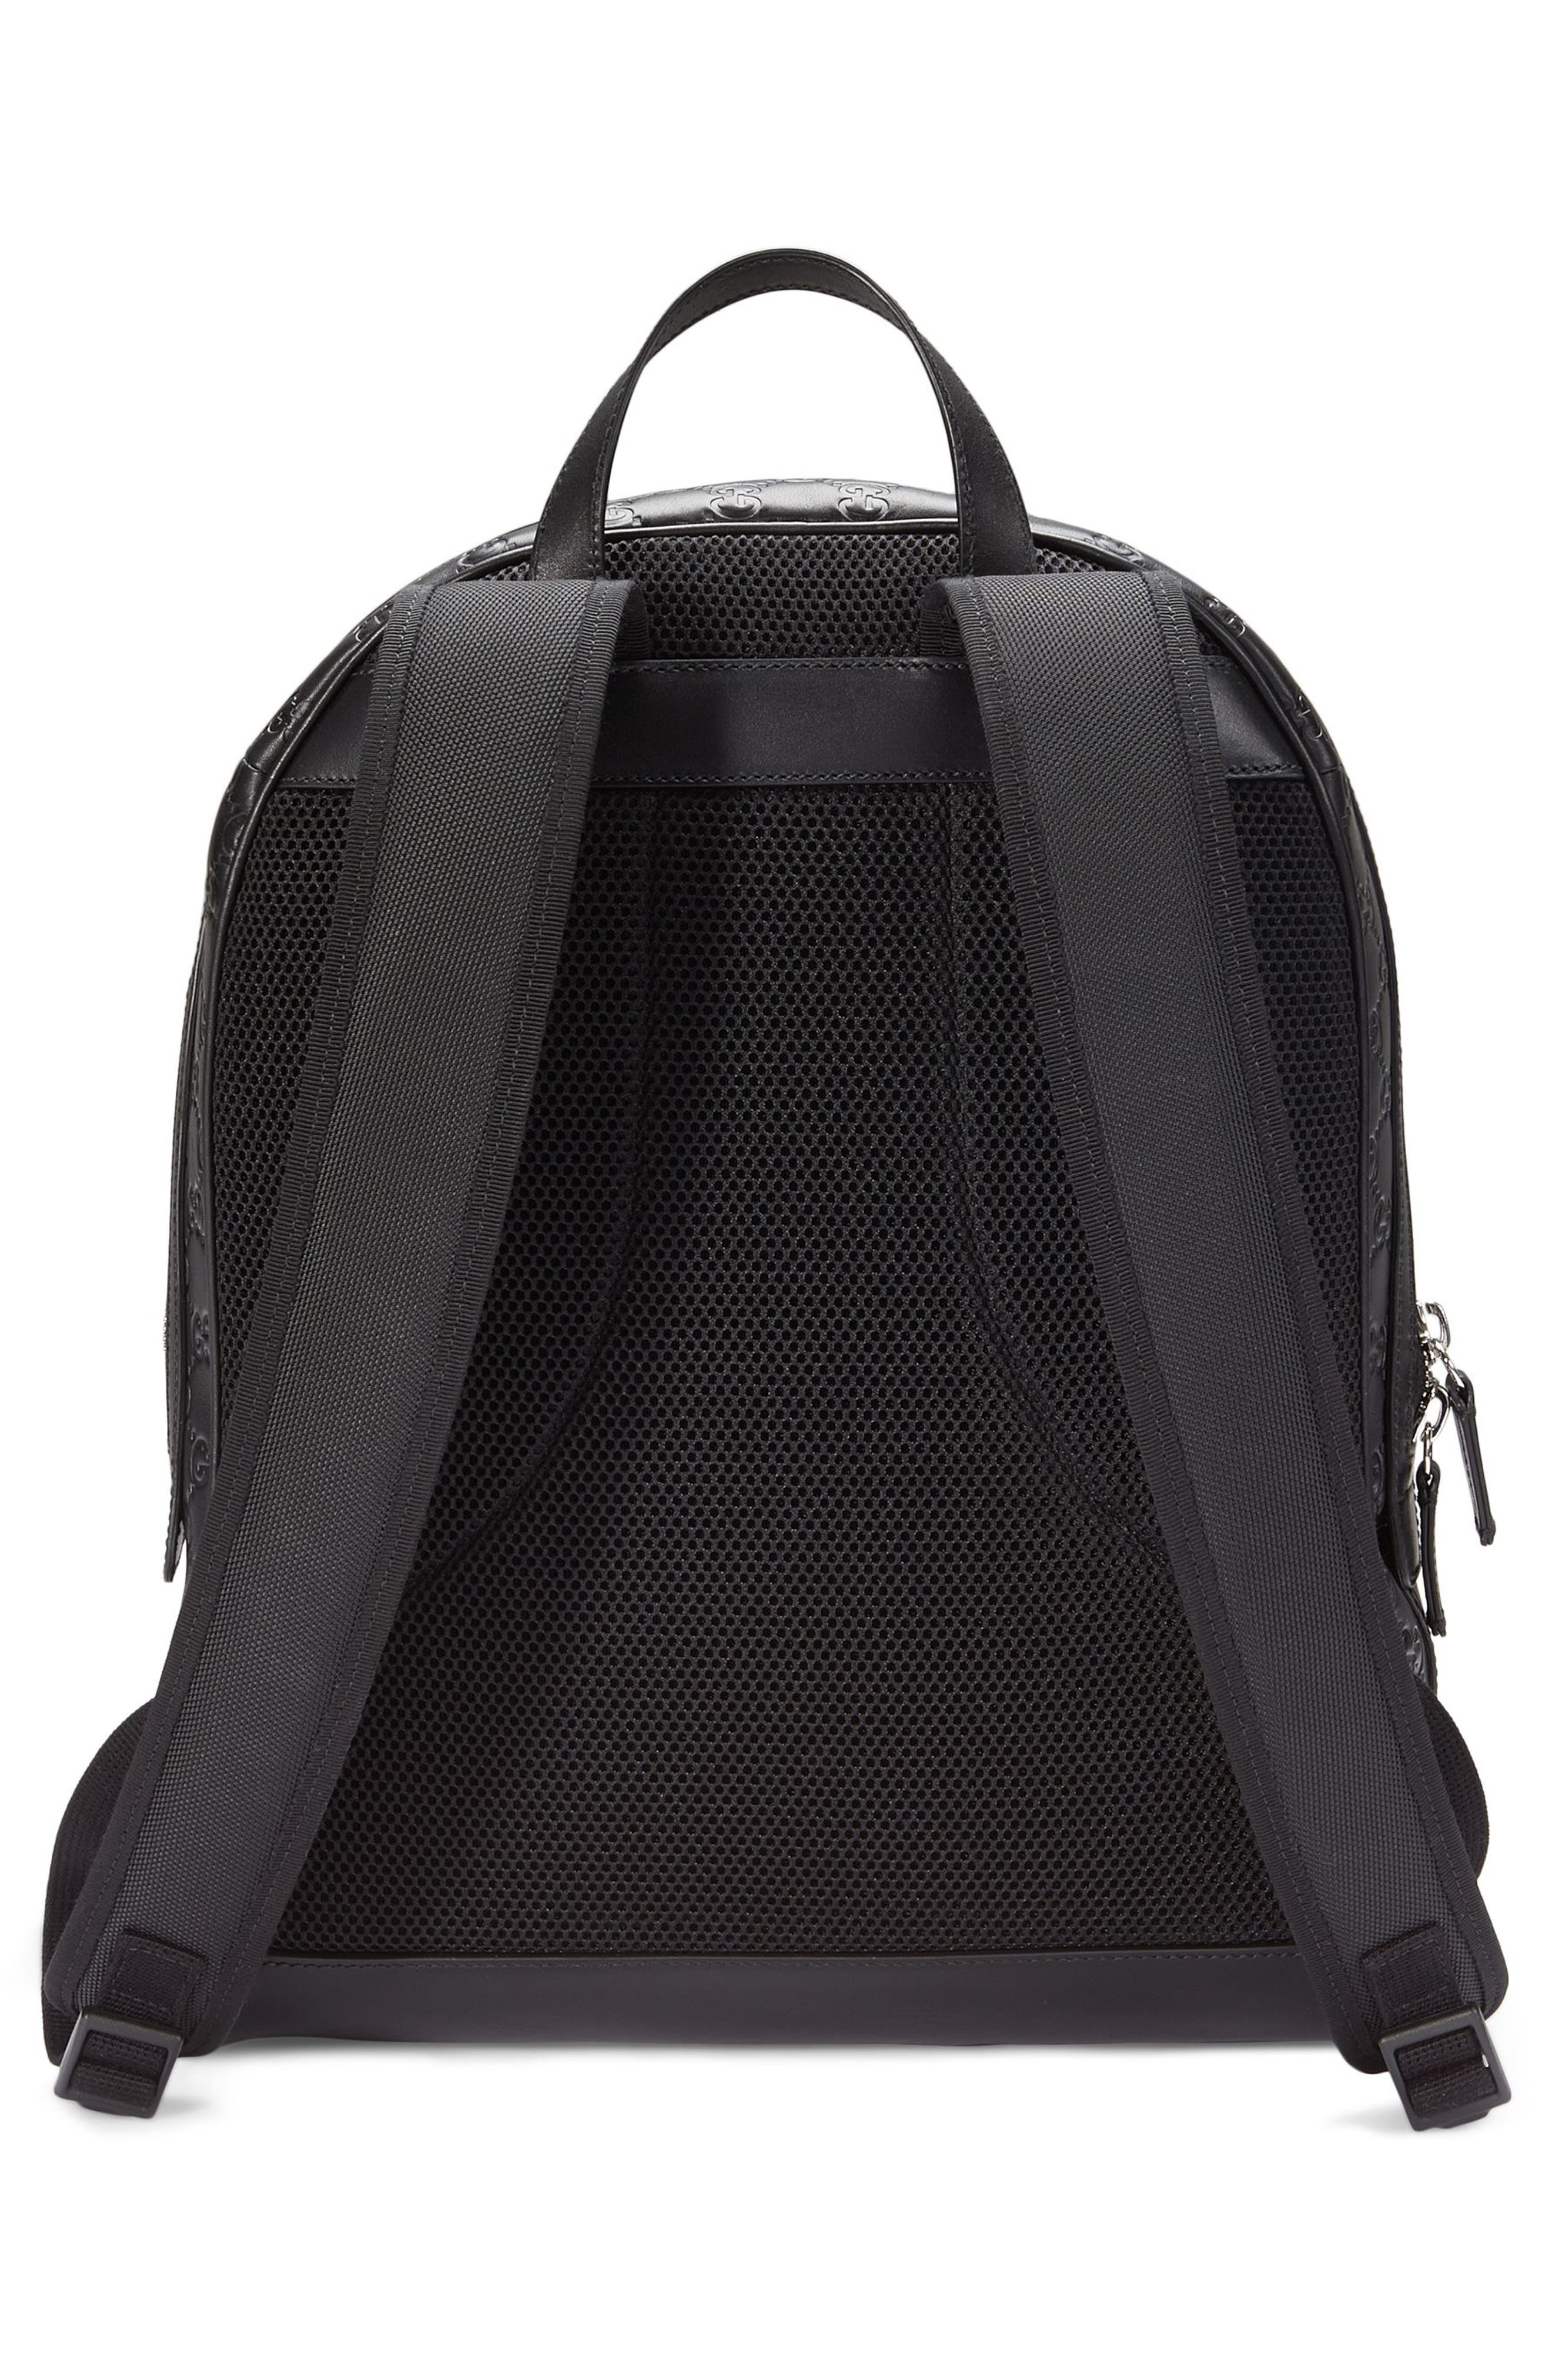 Embossed Leather Backpack,                             Alternate thumbnail 2, color,                             001